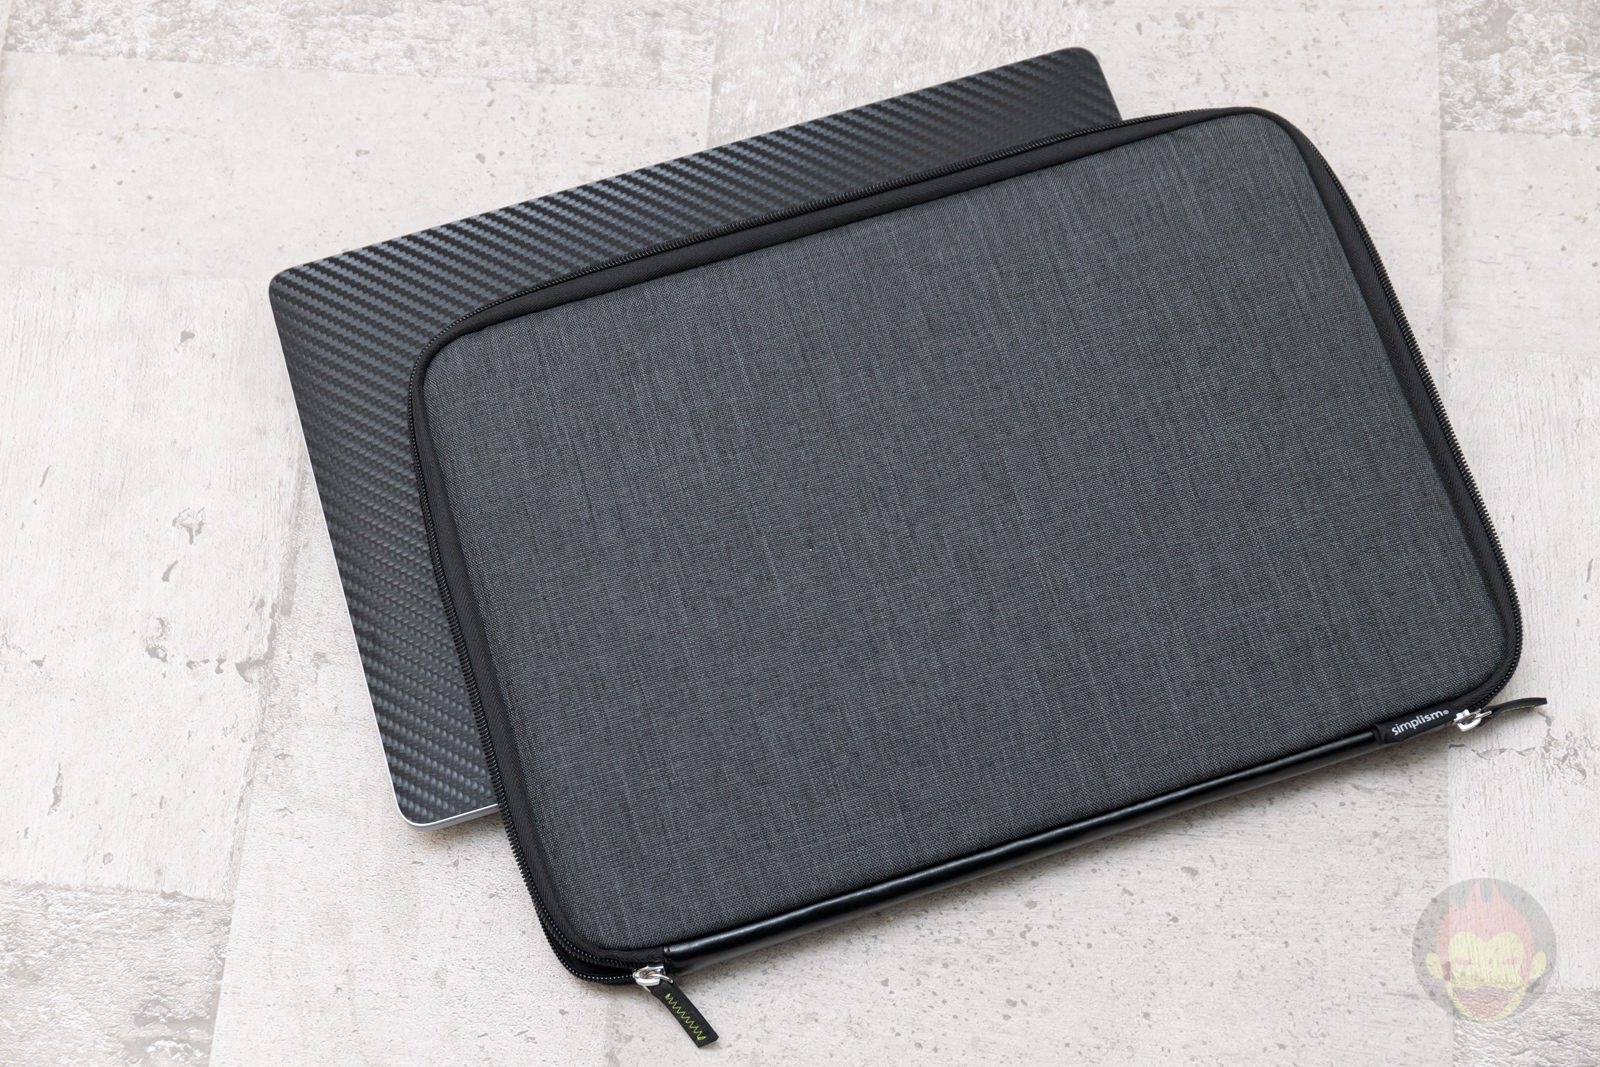 Simplism-BookZip-Case-for-MBP16-review-04.jpg